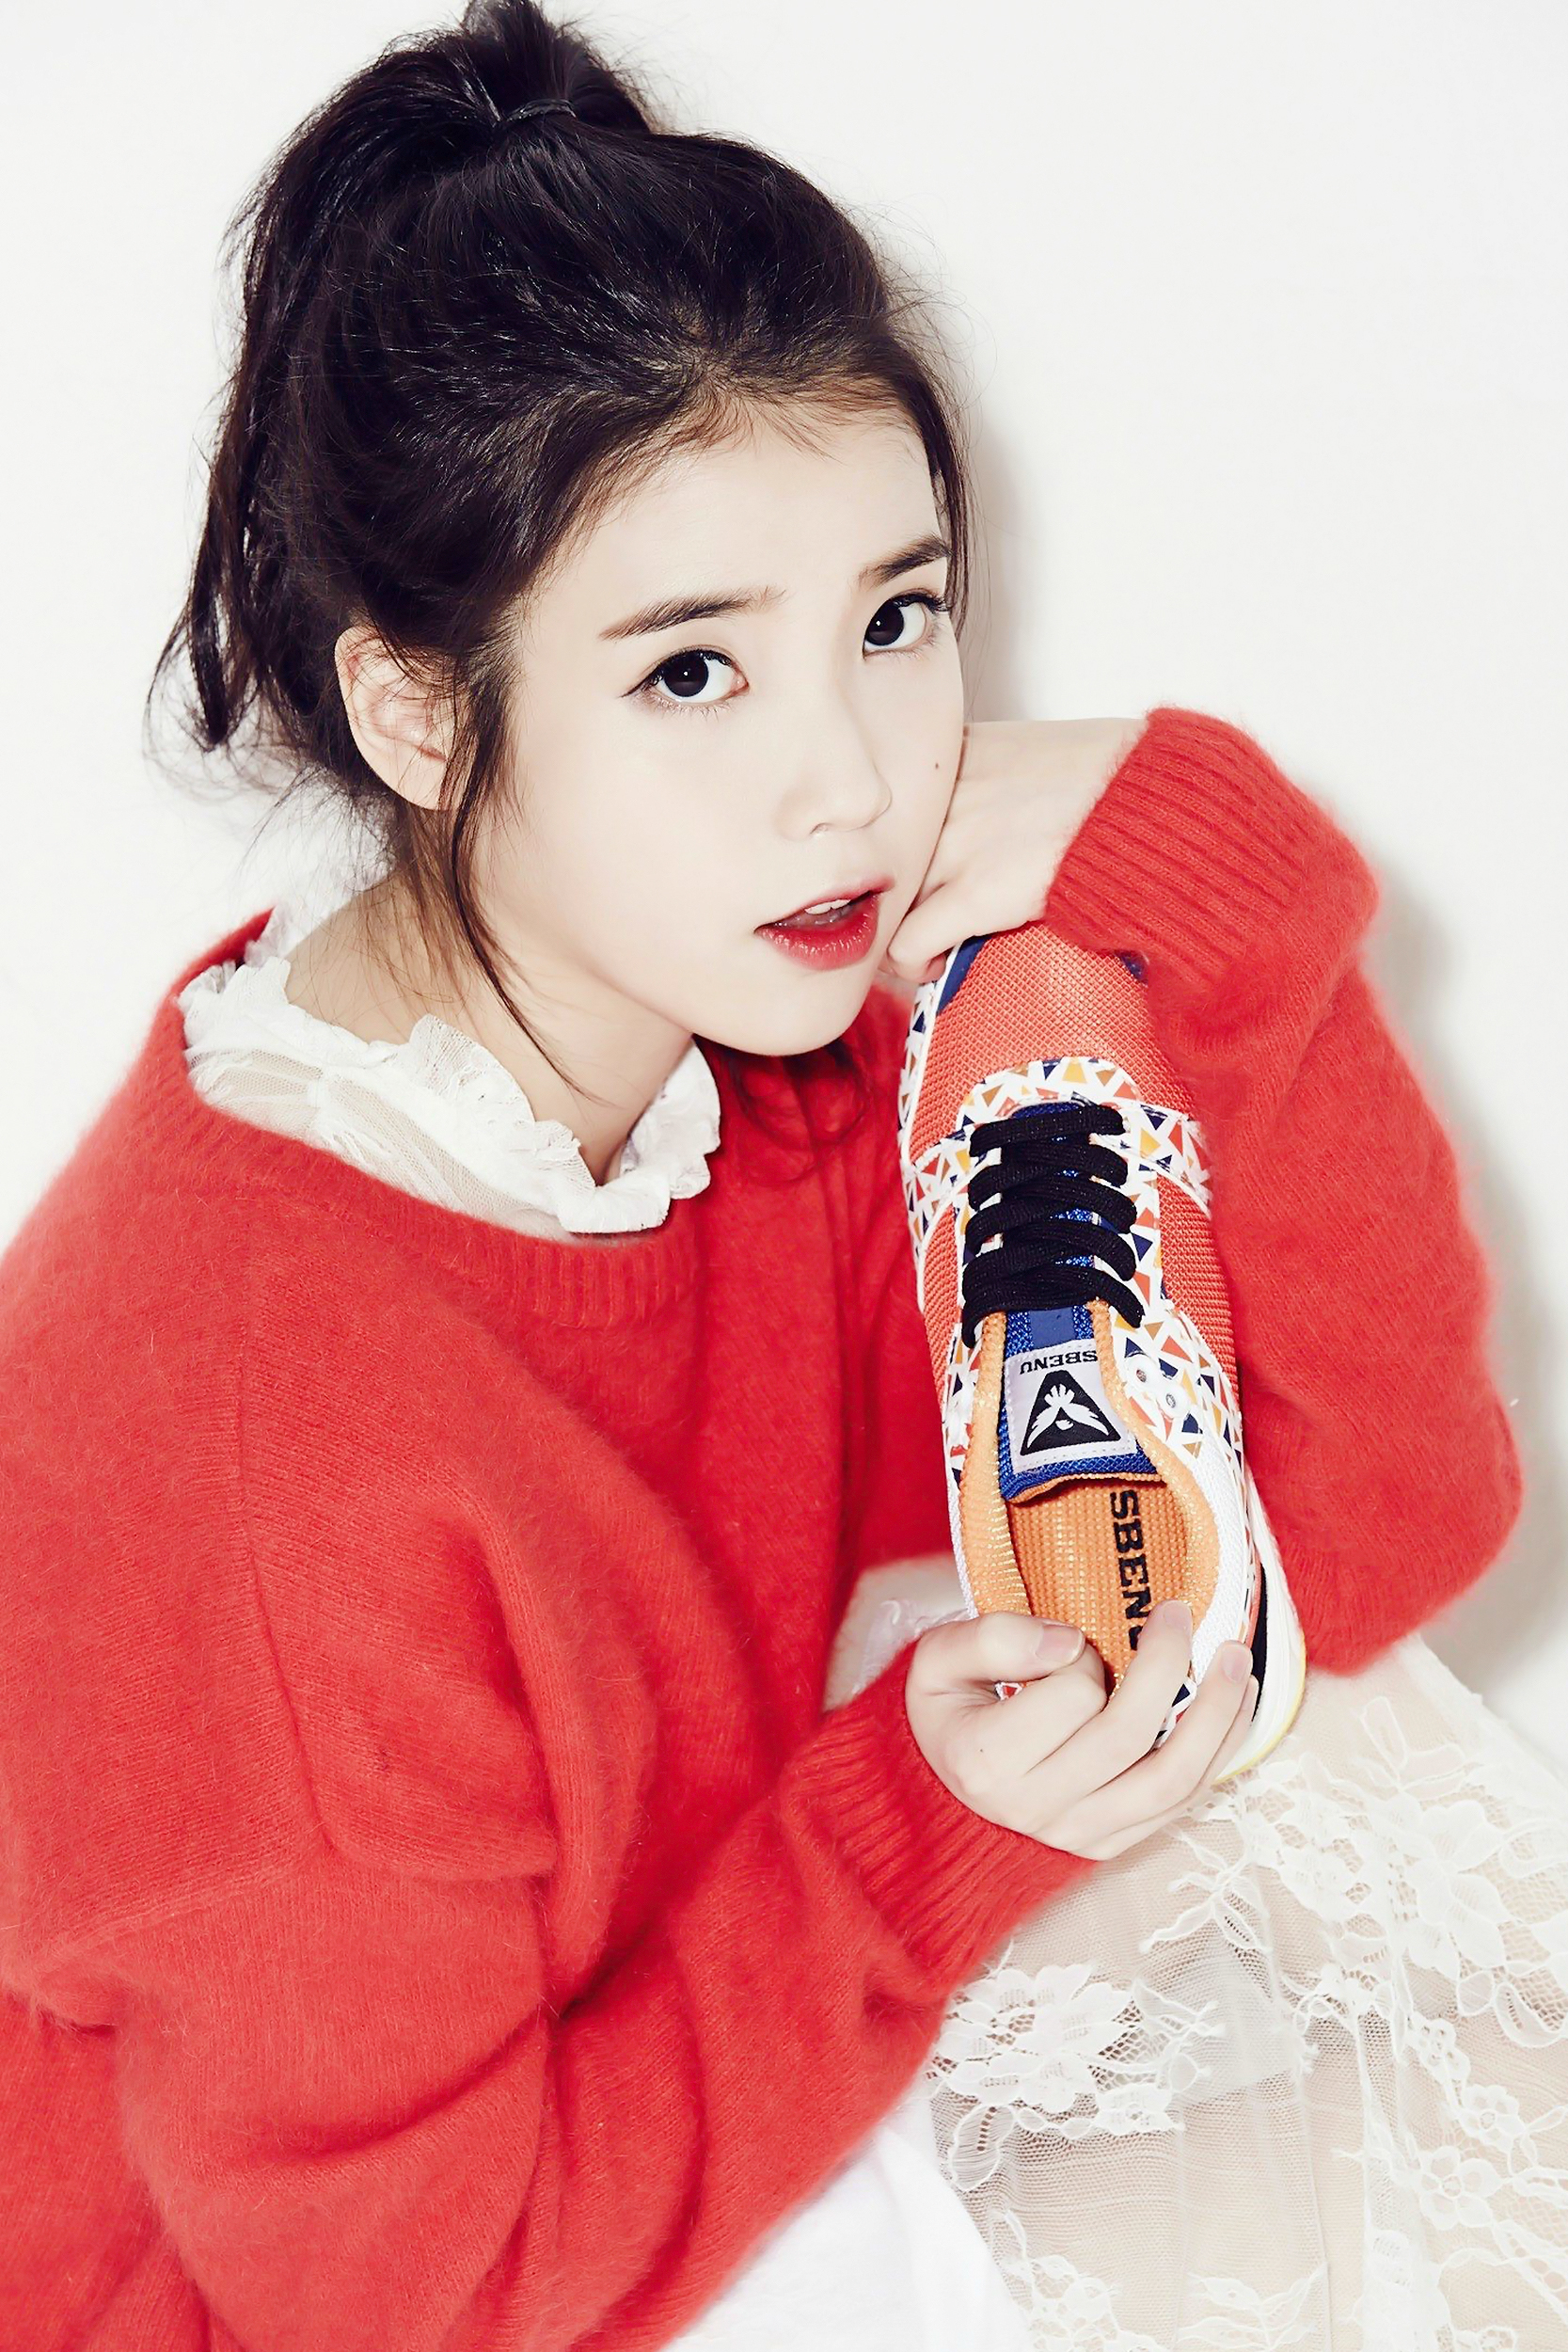 Iu Android Iphone Wallpaper 1472 Asiachan Kpop Image Board